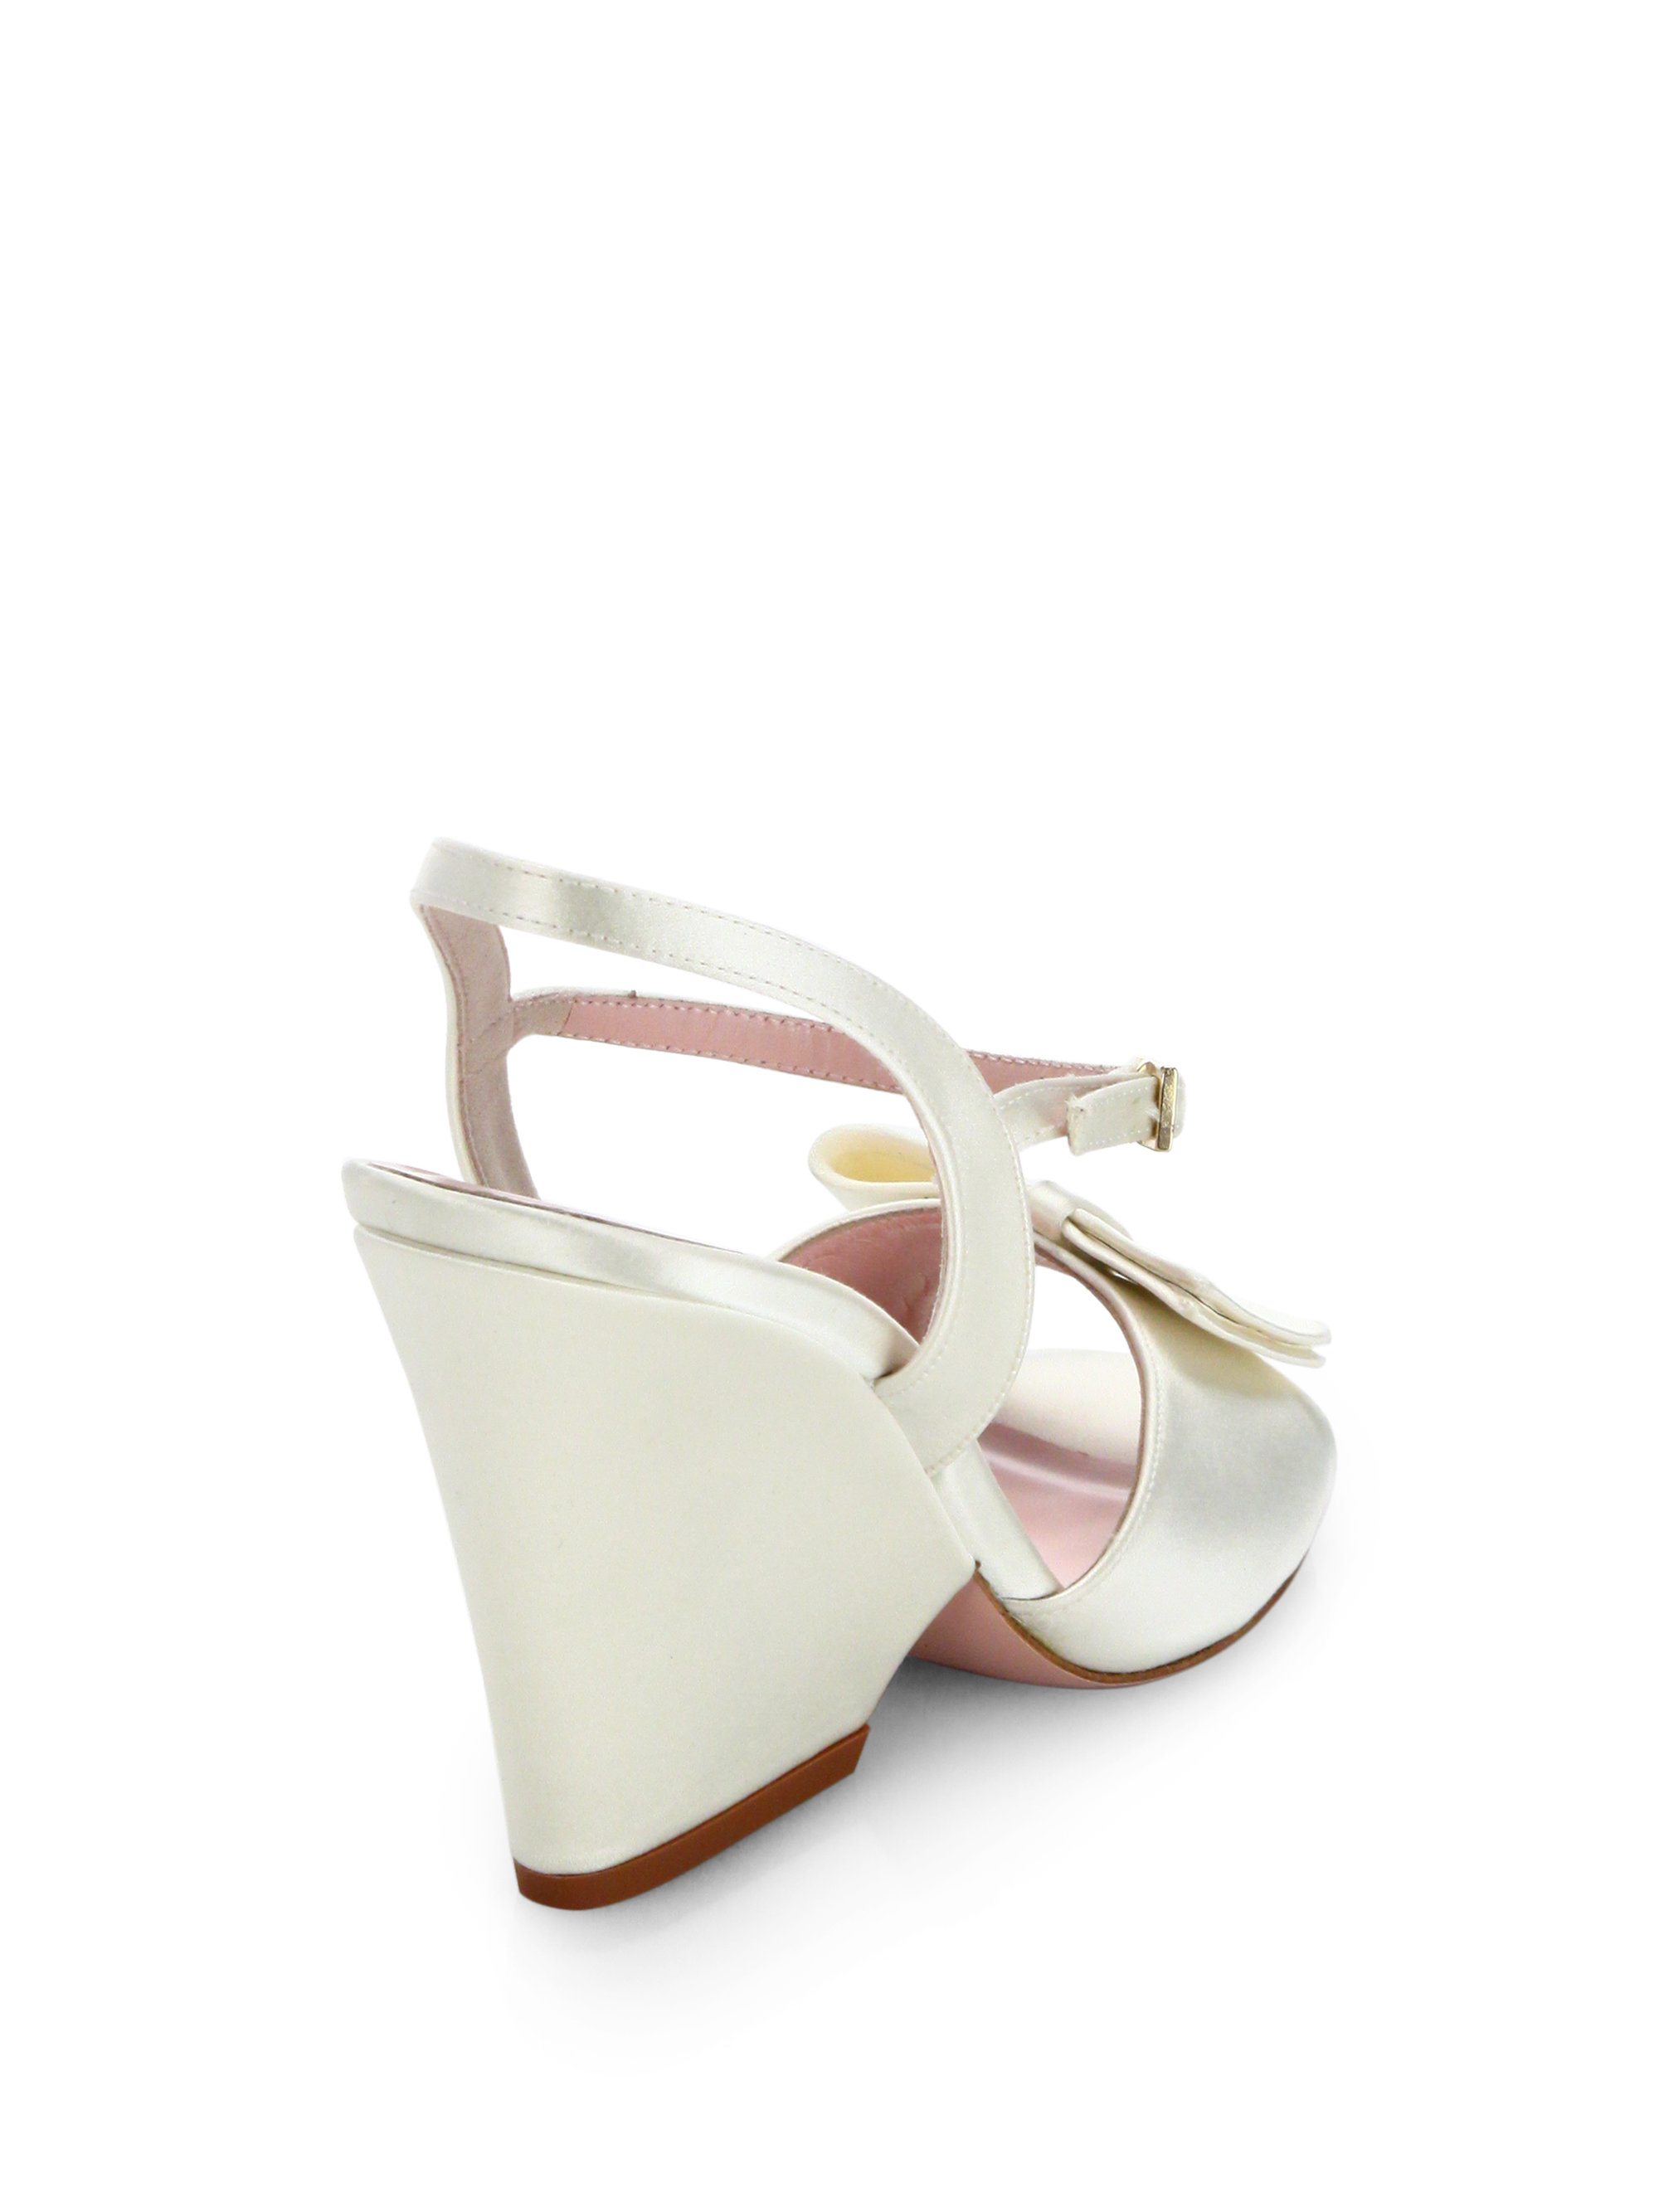 dc536a2d193 Lyst - Kate Spade Imari Satin Bow Wedge Sandals in White